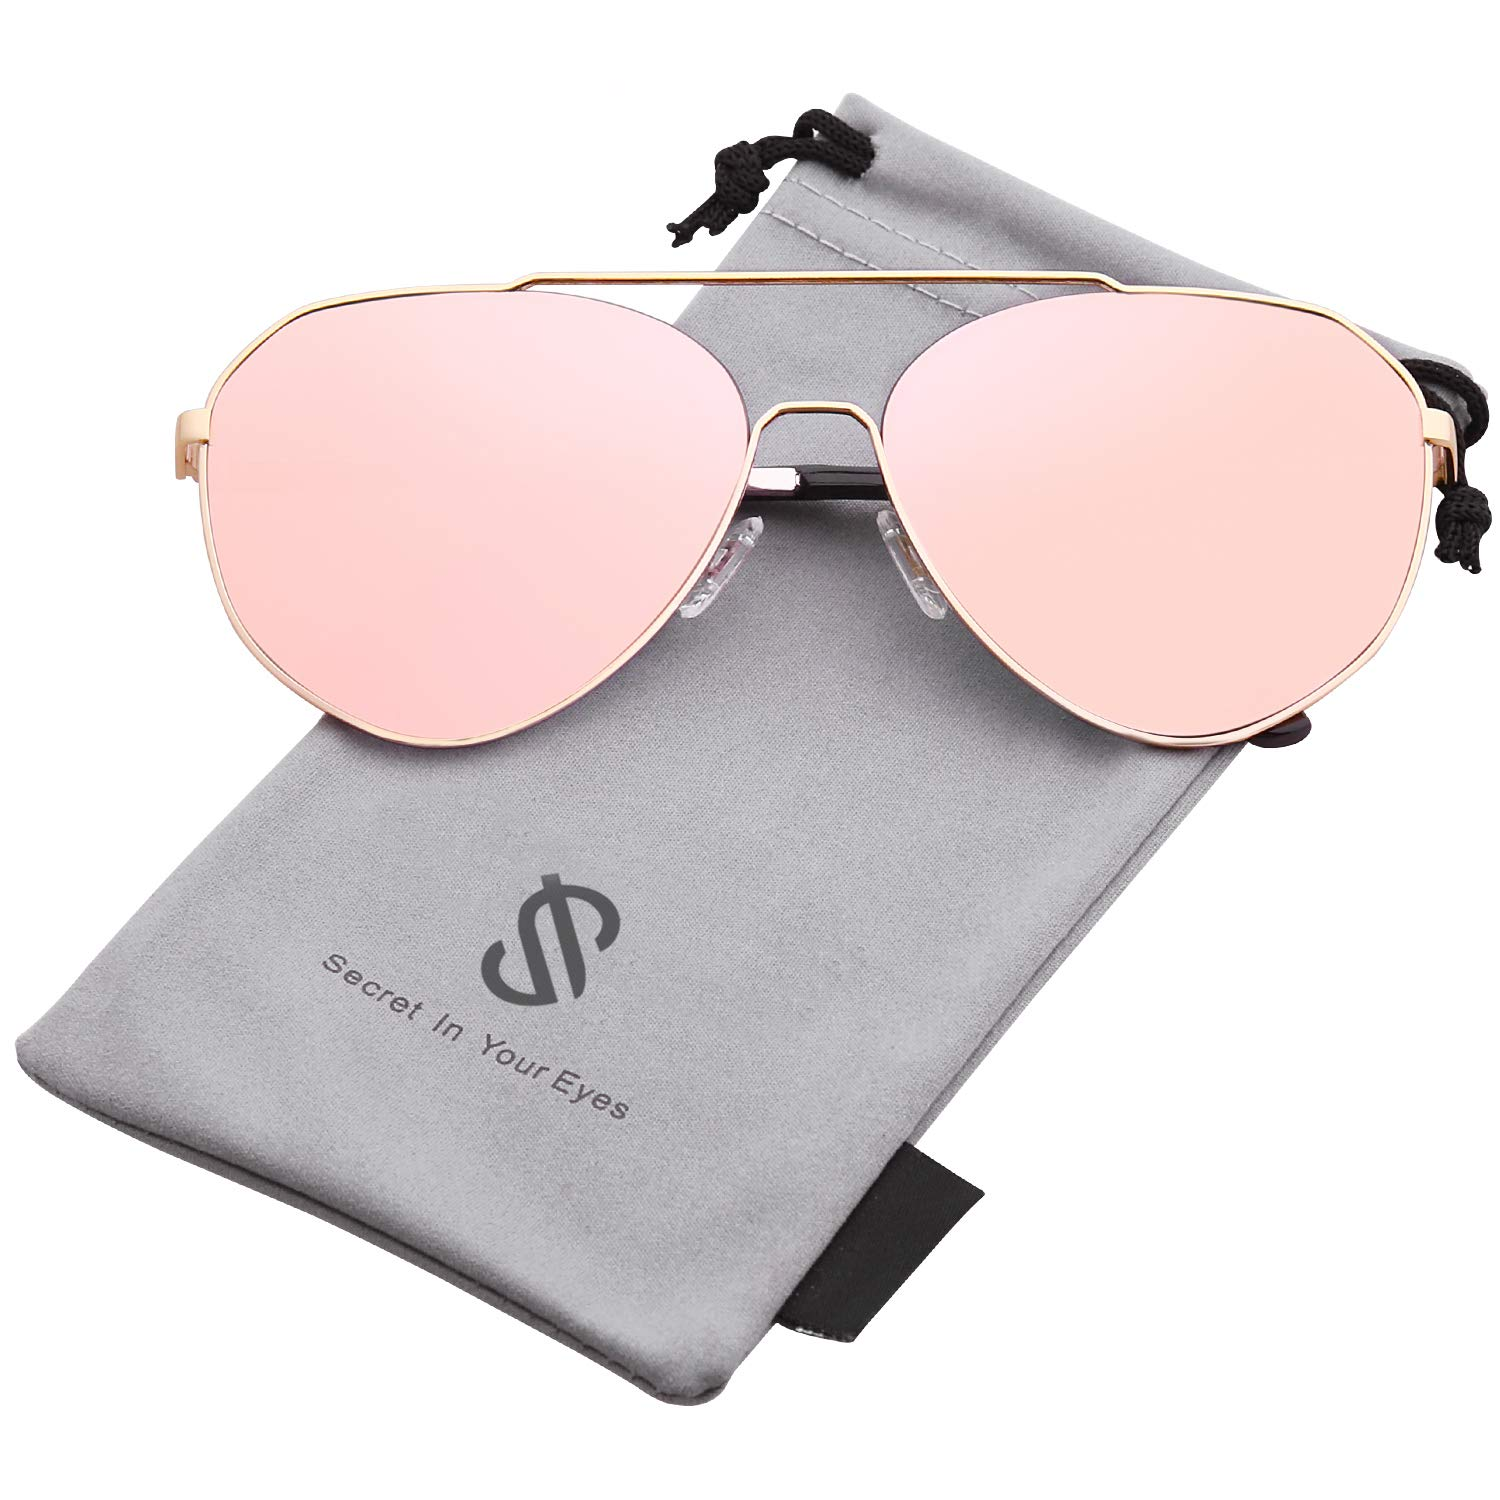 SOJOS Oversized Aviator Sunglasses Mirrored Flat Lens for Men Women UV400 SJ1083 with Gold Frame/Pink Mirrored Lens by SOJOS